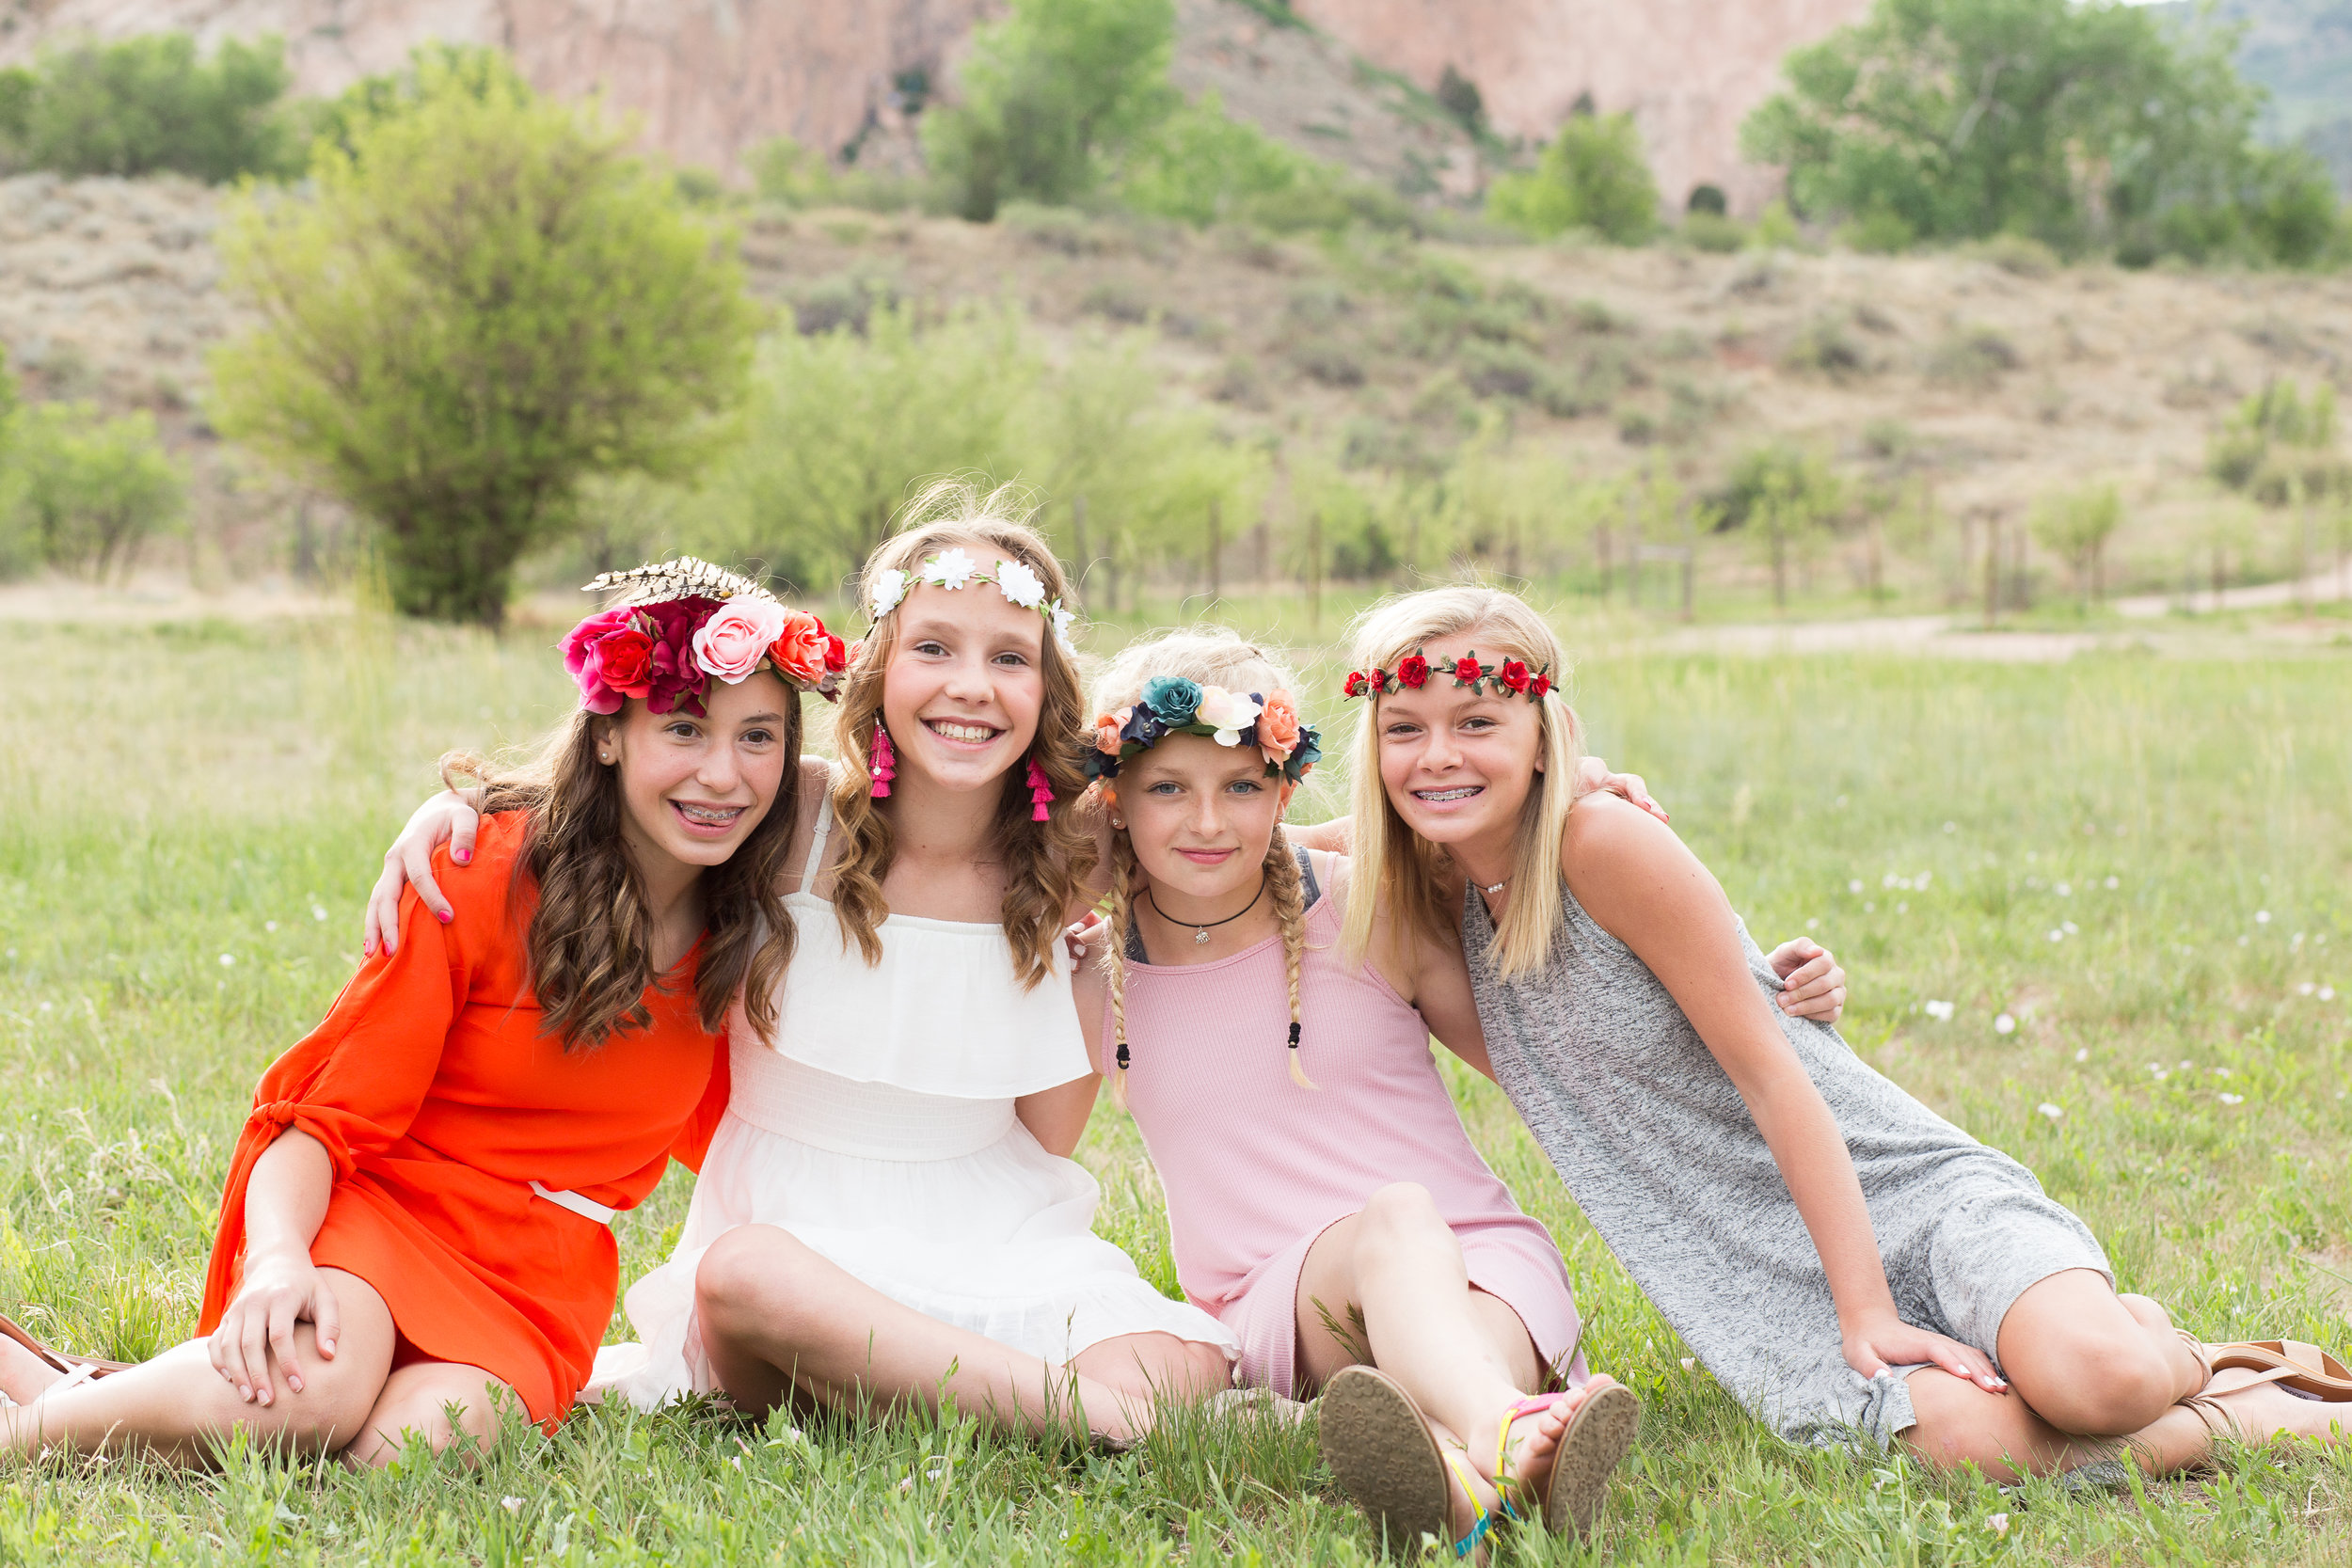 Colorado Springs Senior and Tween Photographer | Colorado  Springs Tween and Senior Photography | Stacy Carosa Photography | Middle school friends sitting in field with floral crowns and smiling at camera